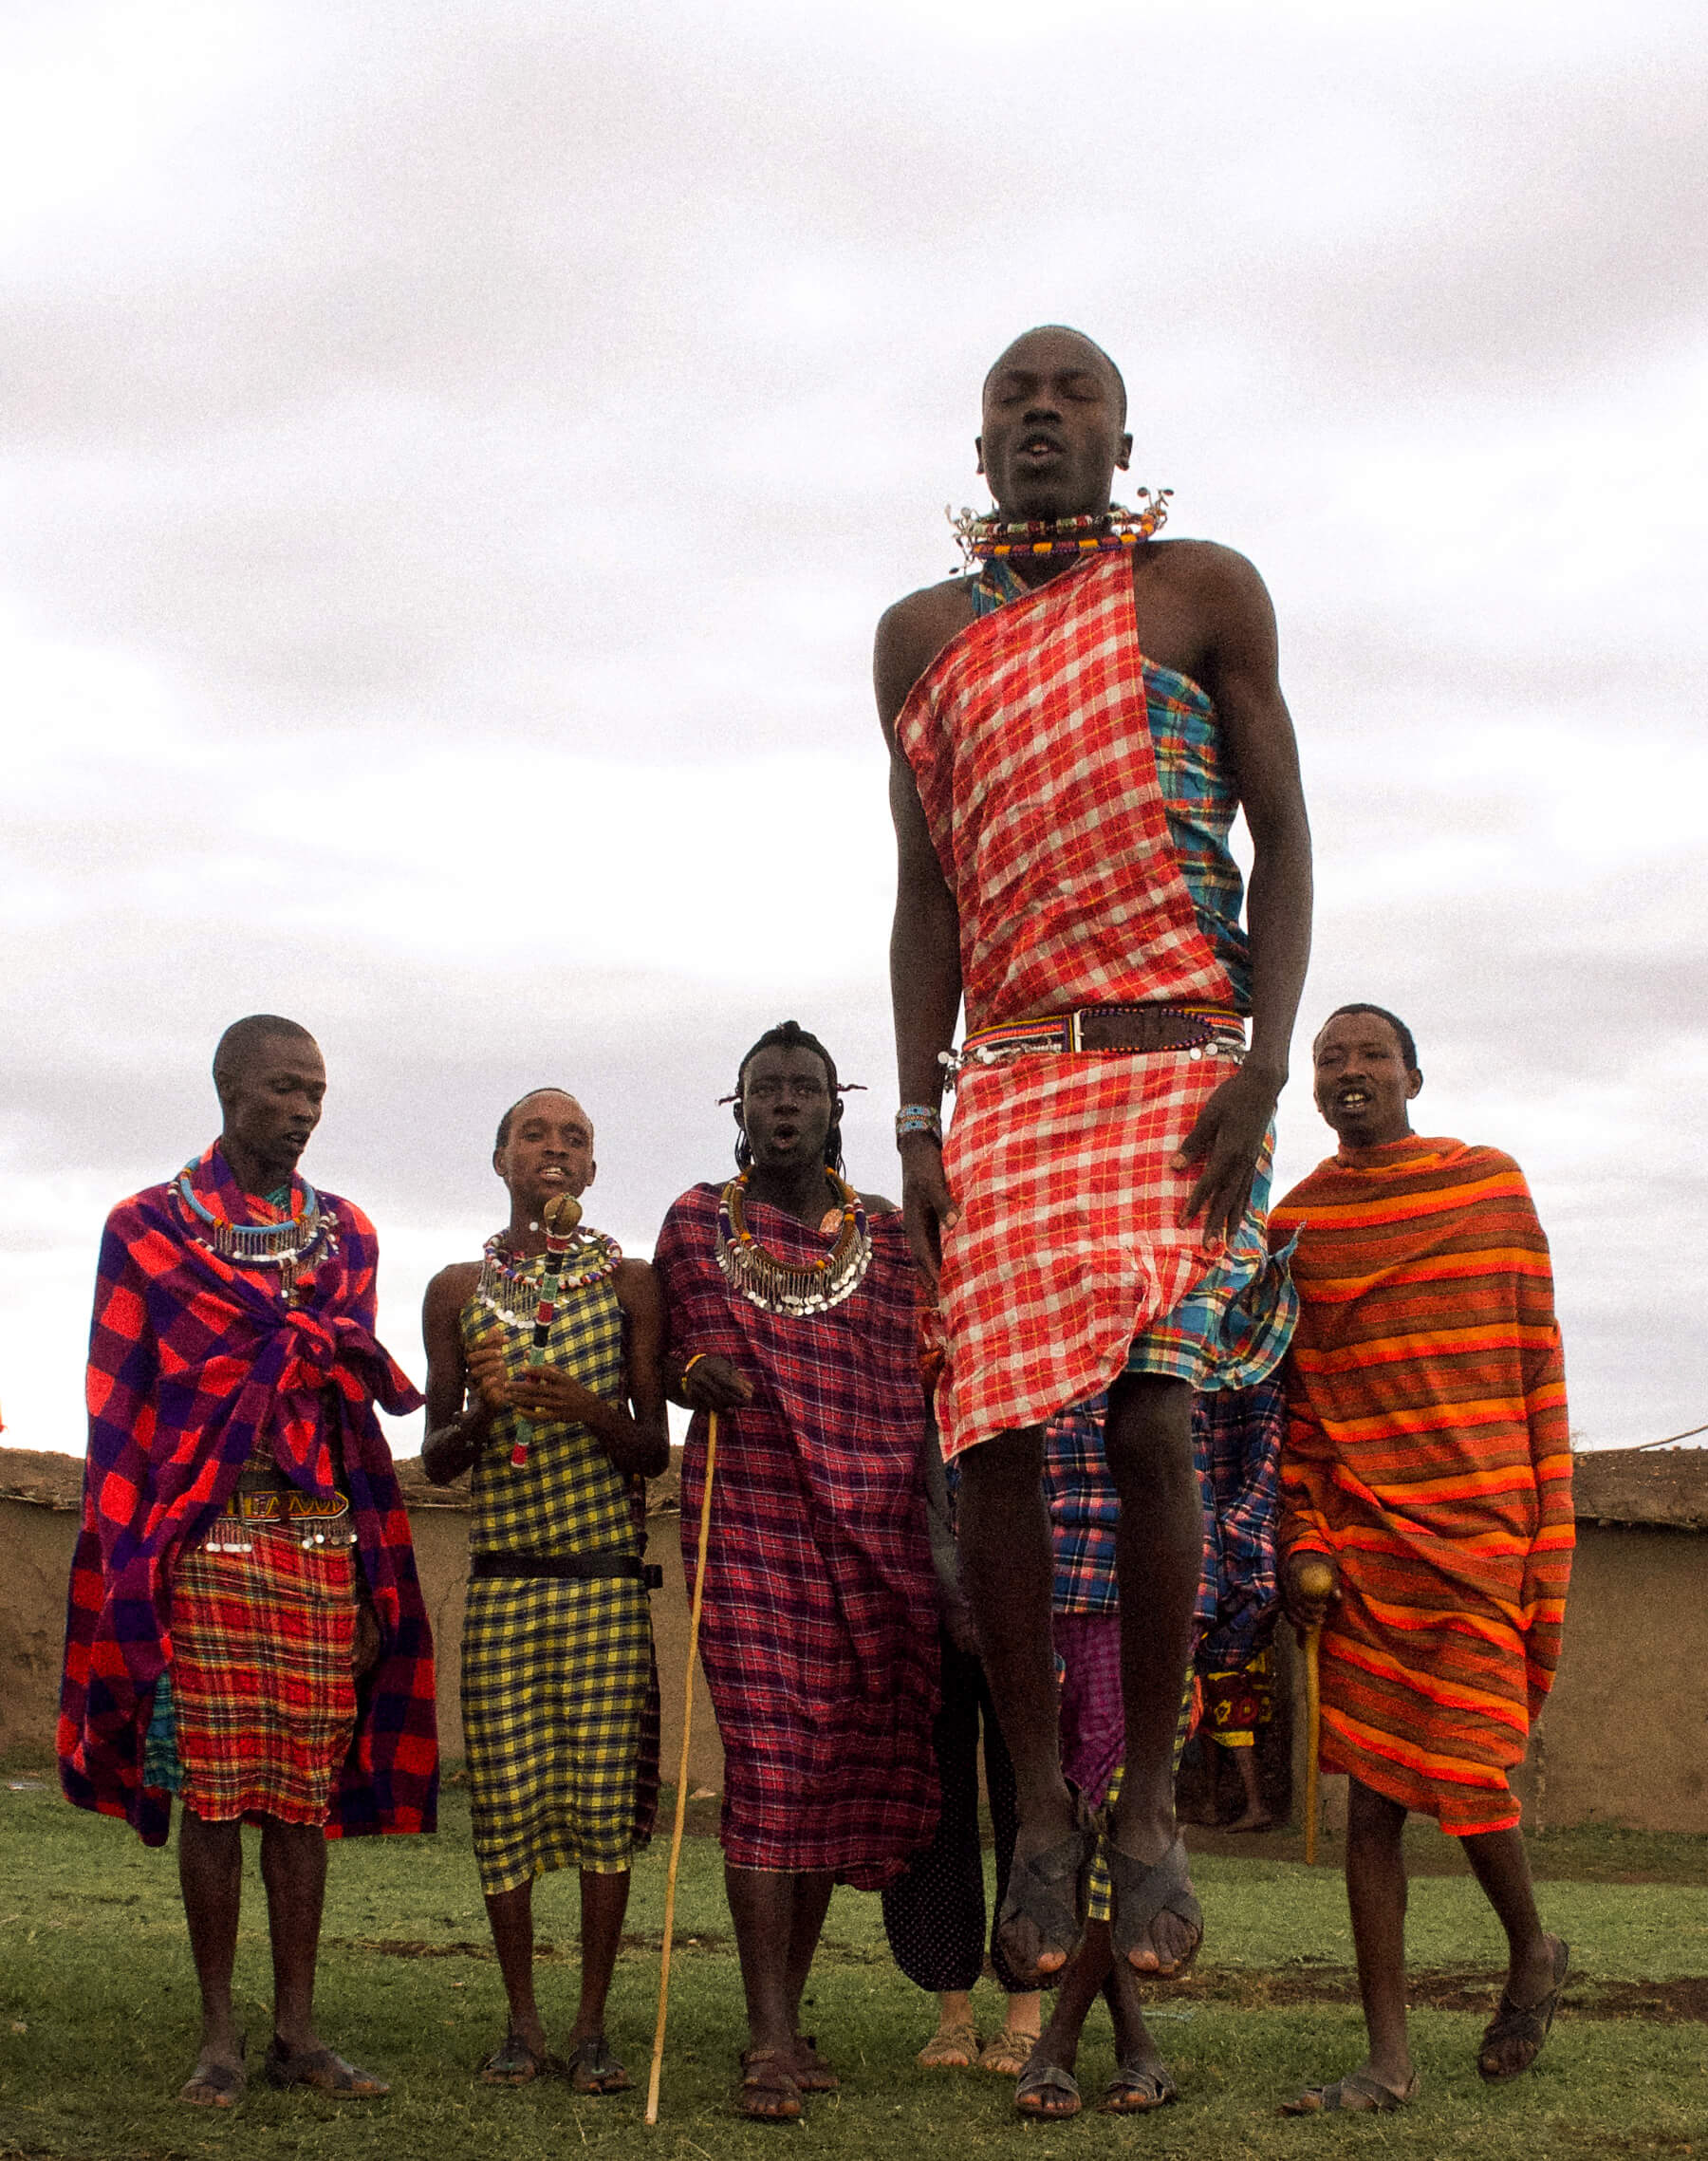 A group of Maasai men in their traditional dress standing in a line behind one man that is jumping